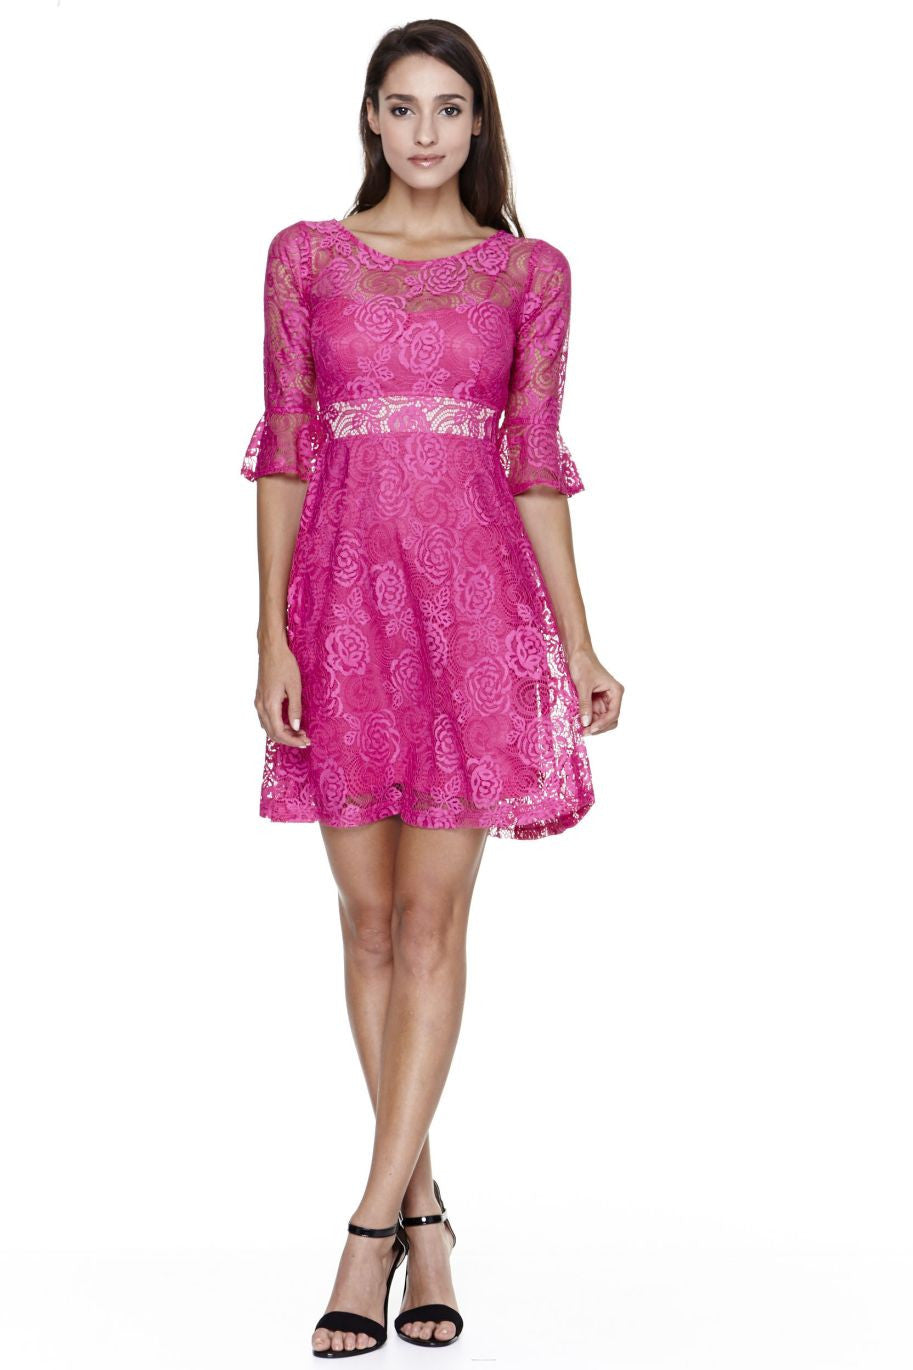 Flare Short Sleeve Roses Lace Summer Dress